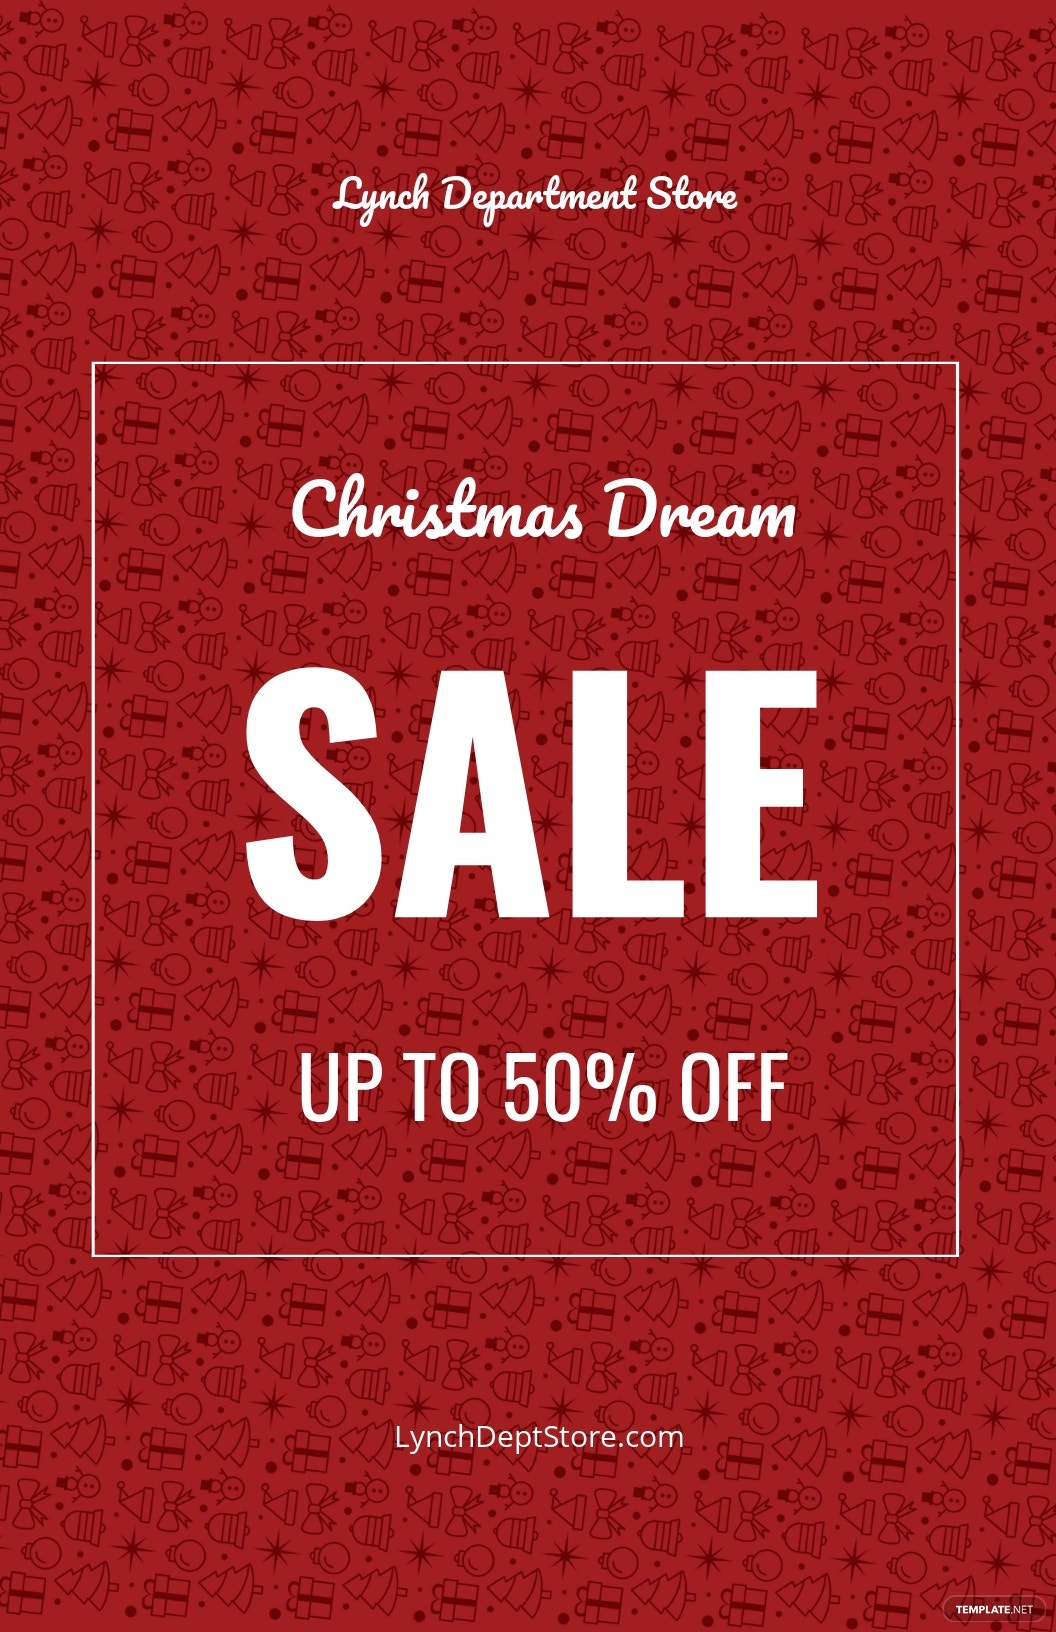 Christmas Dreams Sale Poster Template